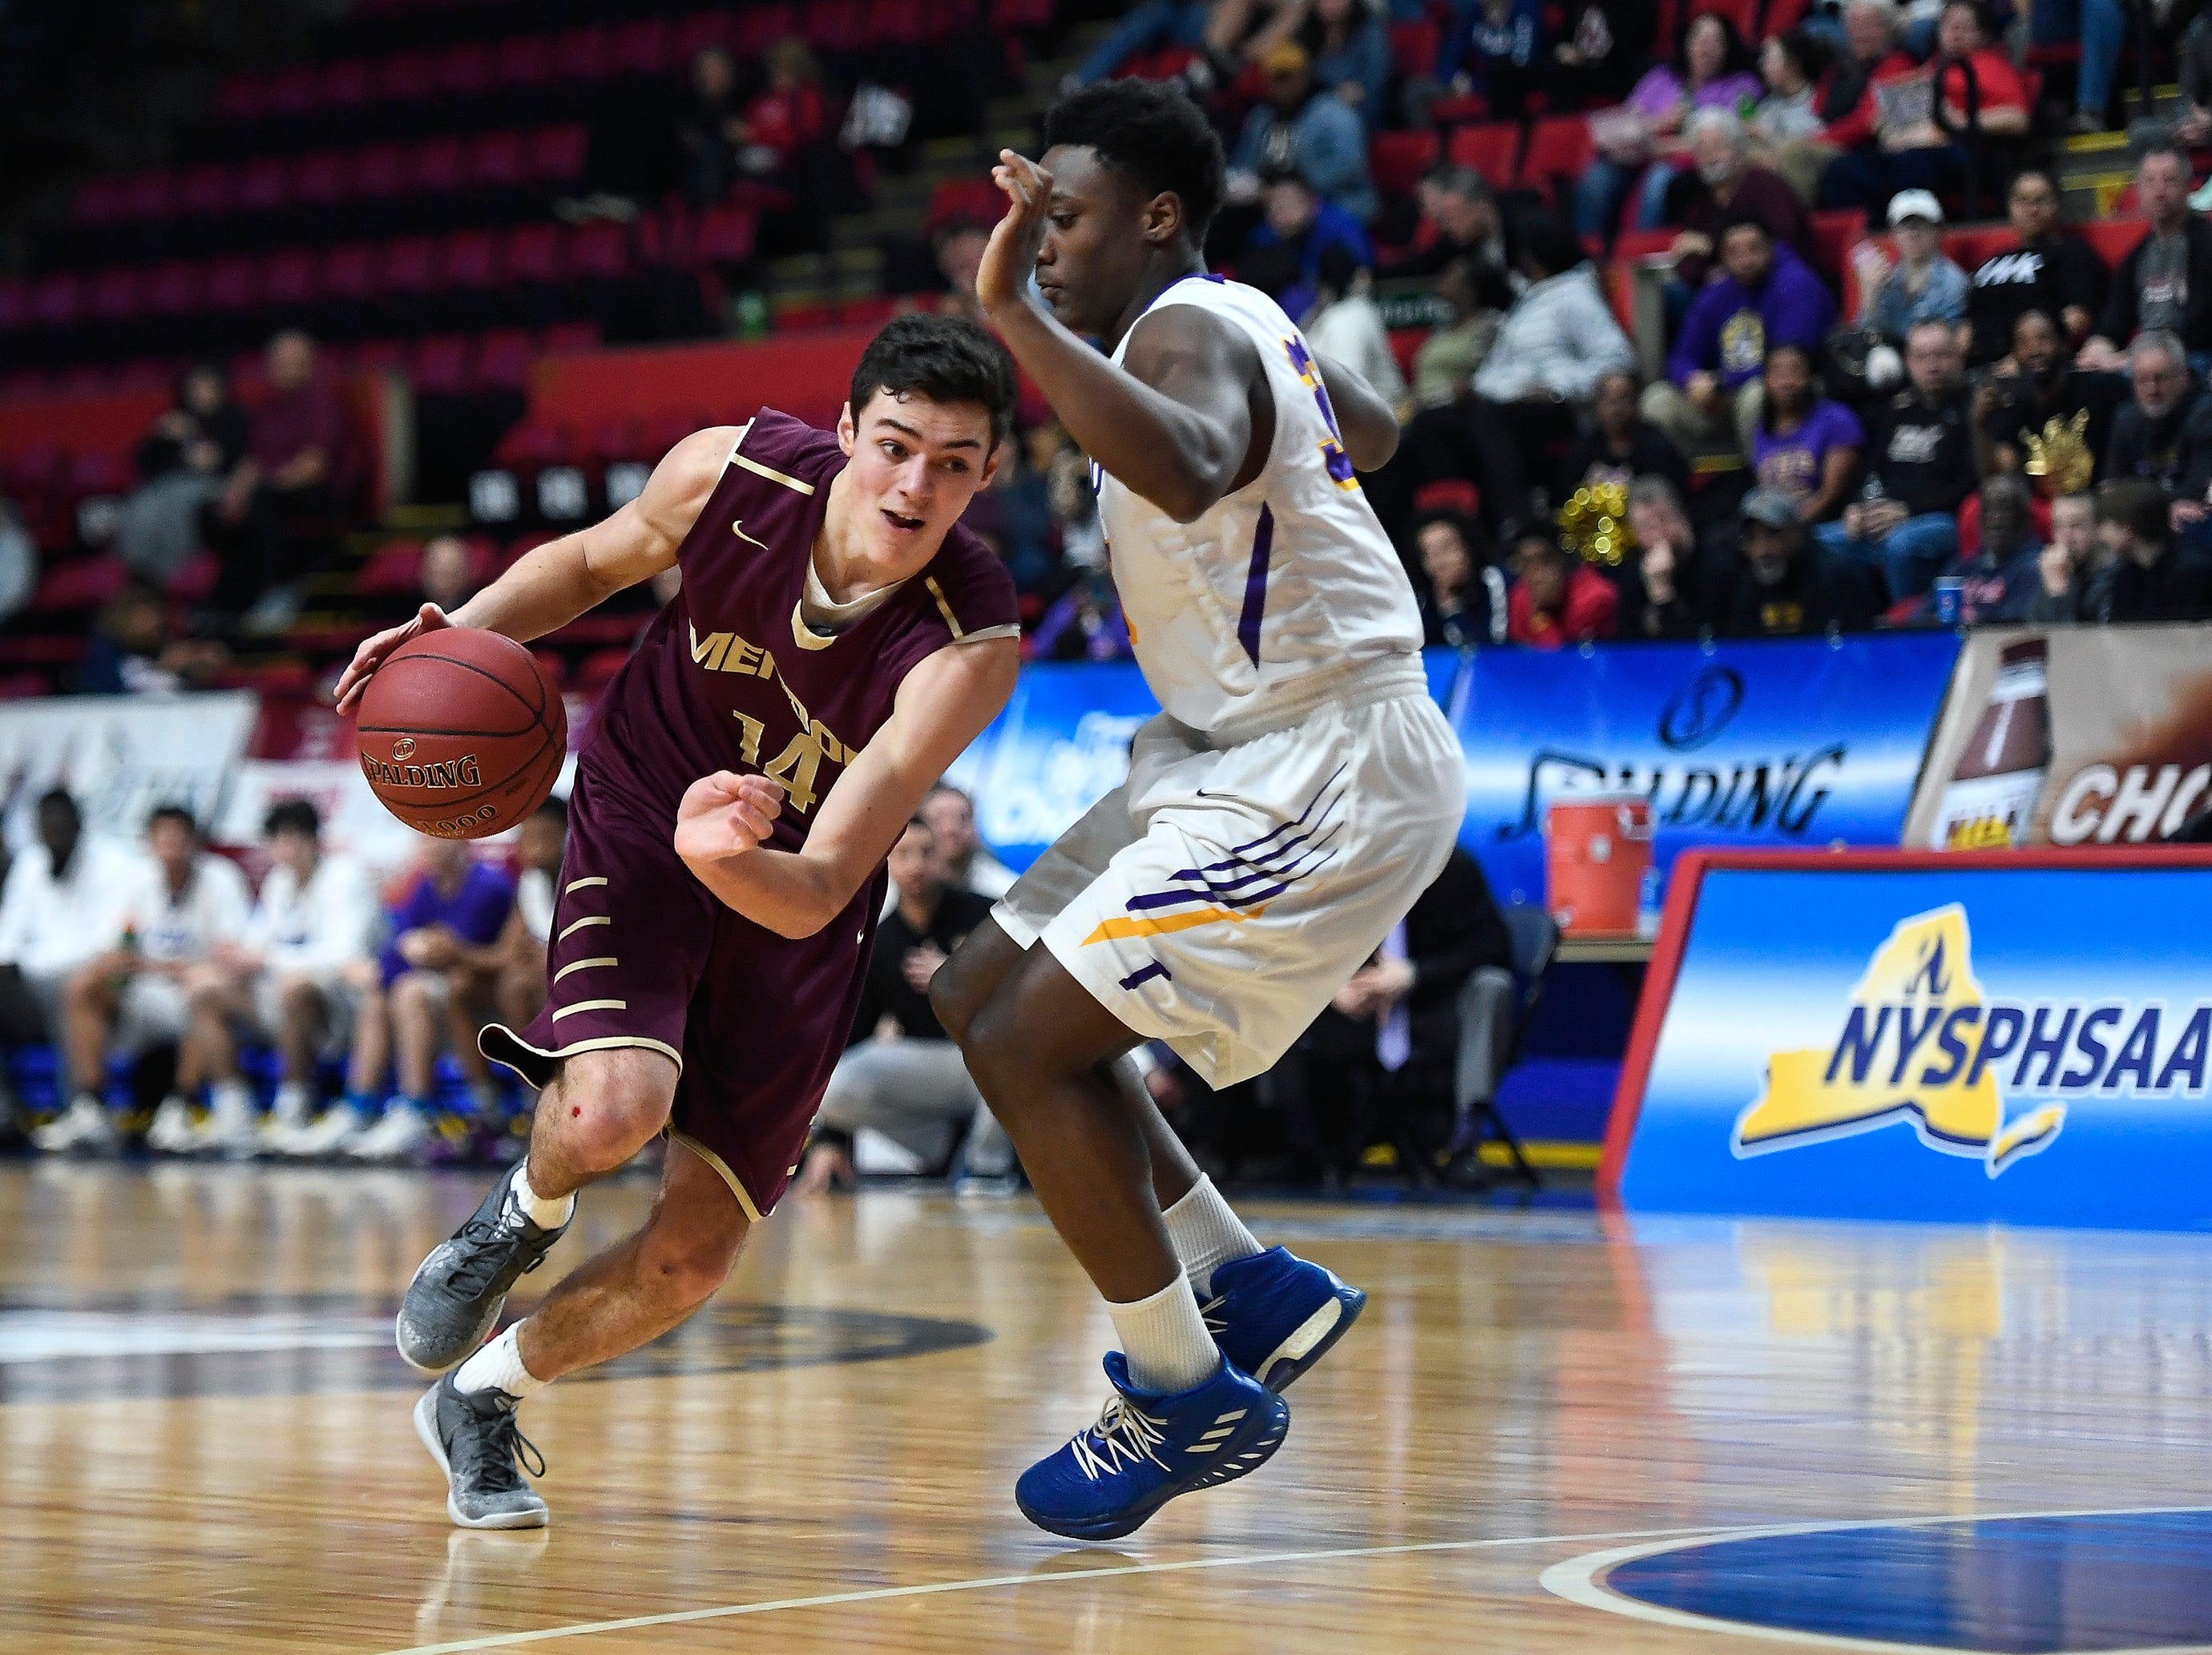 Pittsford Mendon's Dan Cook, left, is defended by Troy's Isaiah Smith during a Class A semifinal at the NYSPHSAA Boys Basketball Championships.